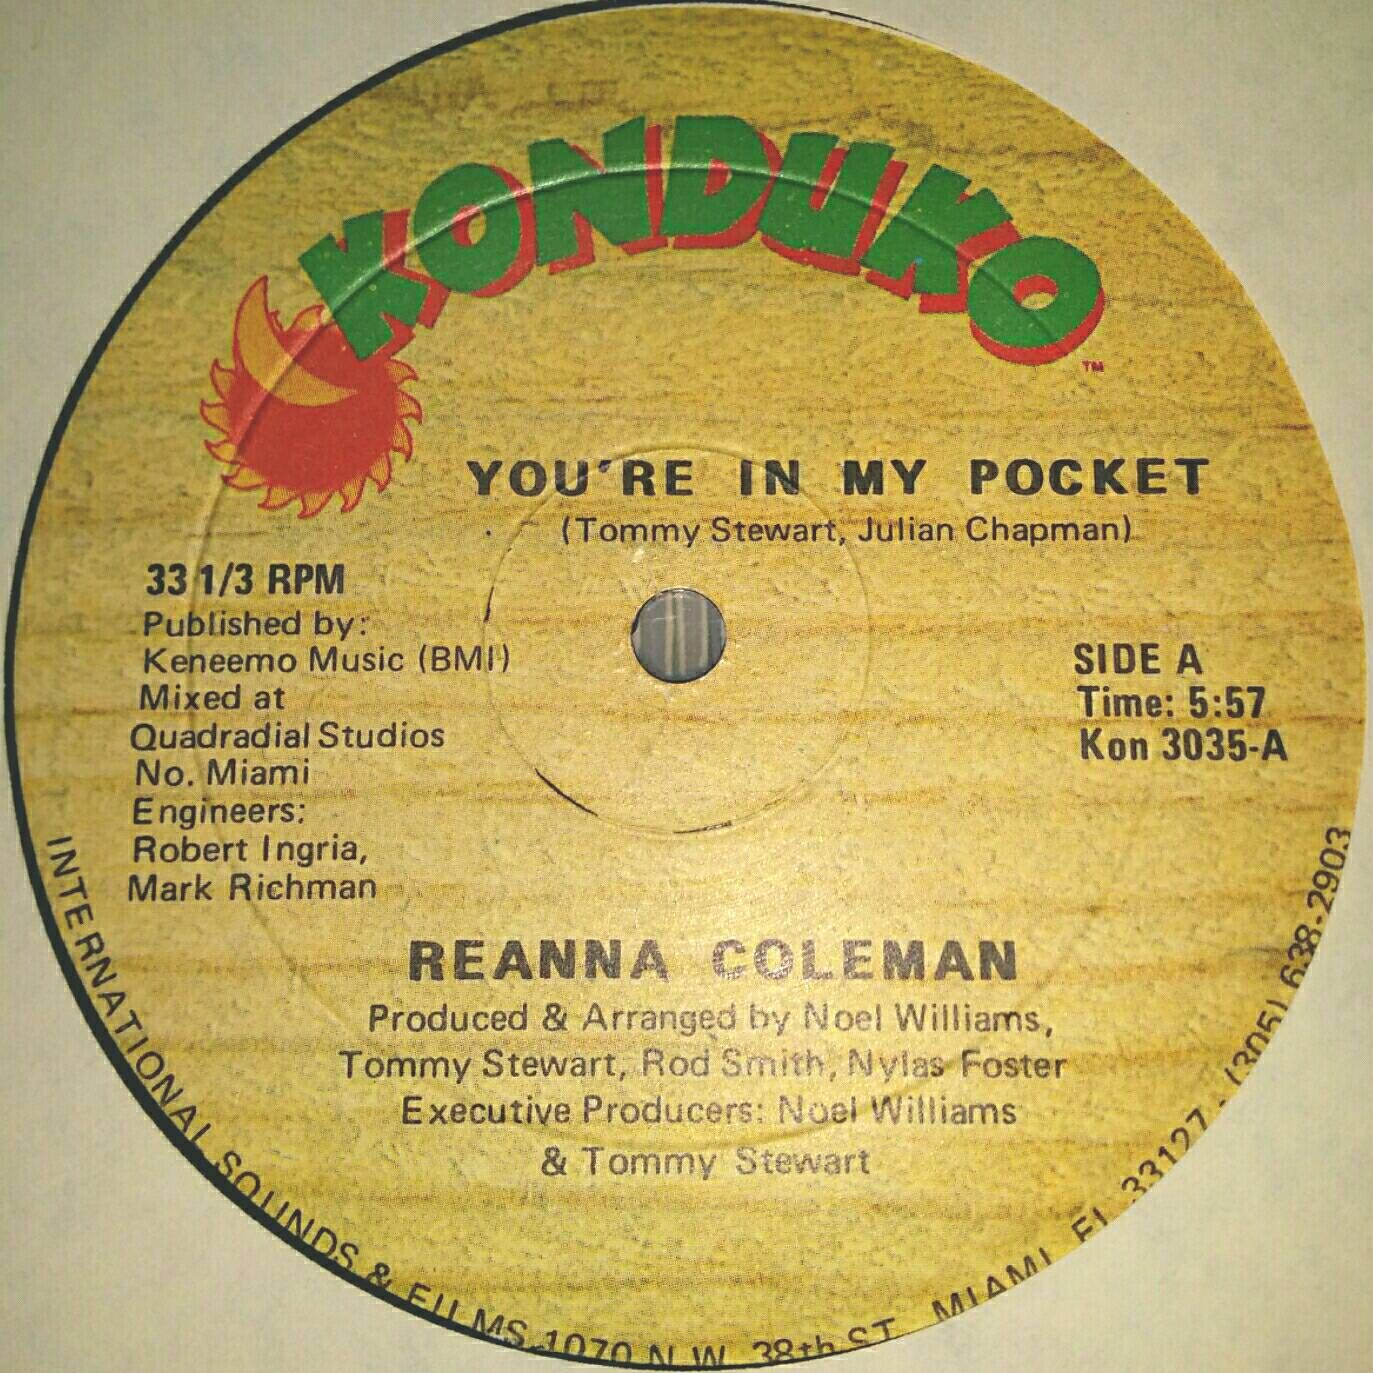 Vinyl Records Northern Soul Reanna Coleman You 39 Re In My Pocket Records Sale Rare Records Vintage Vinyl Vinyl Records Rare Records Northern Soul